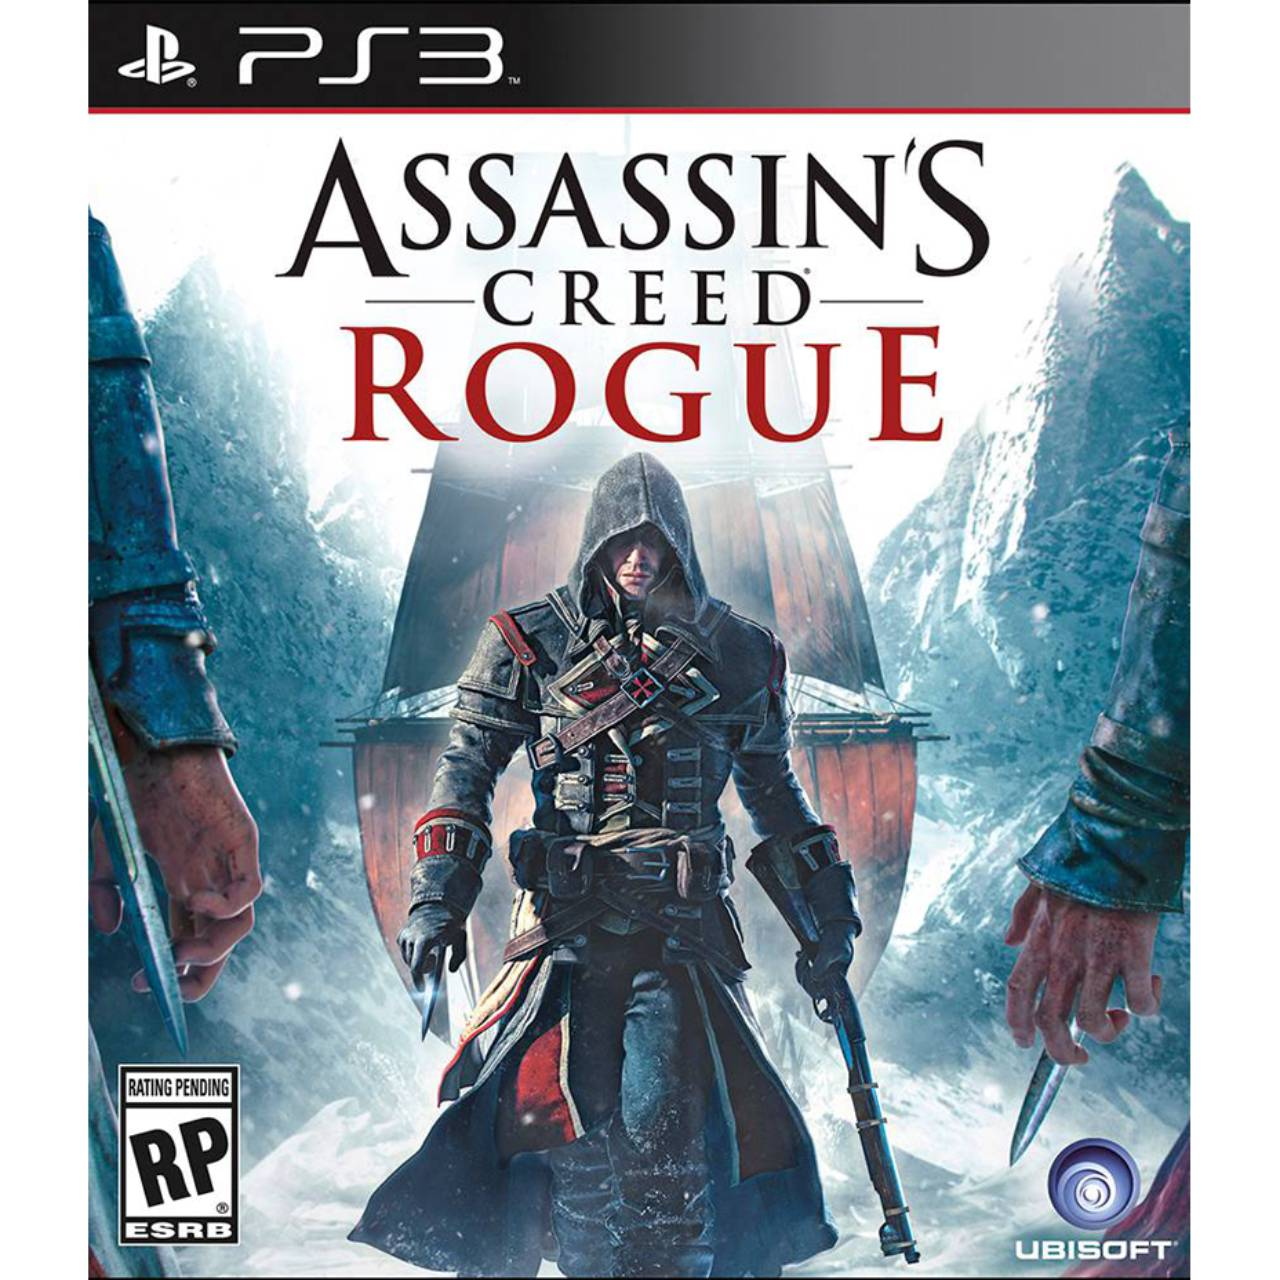 Assassin's Creed: Rogue - PS3 por IT Computadores, Games Celulares